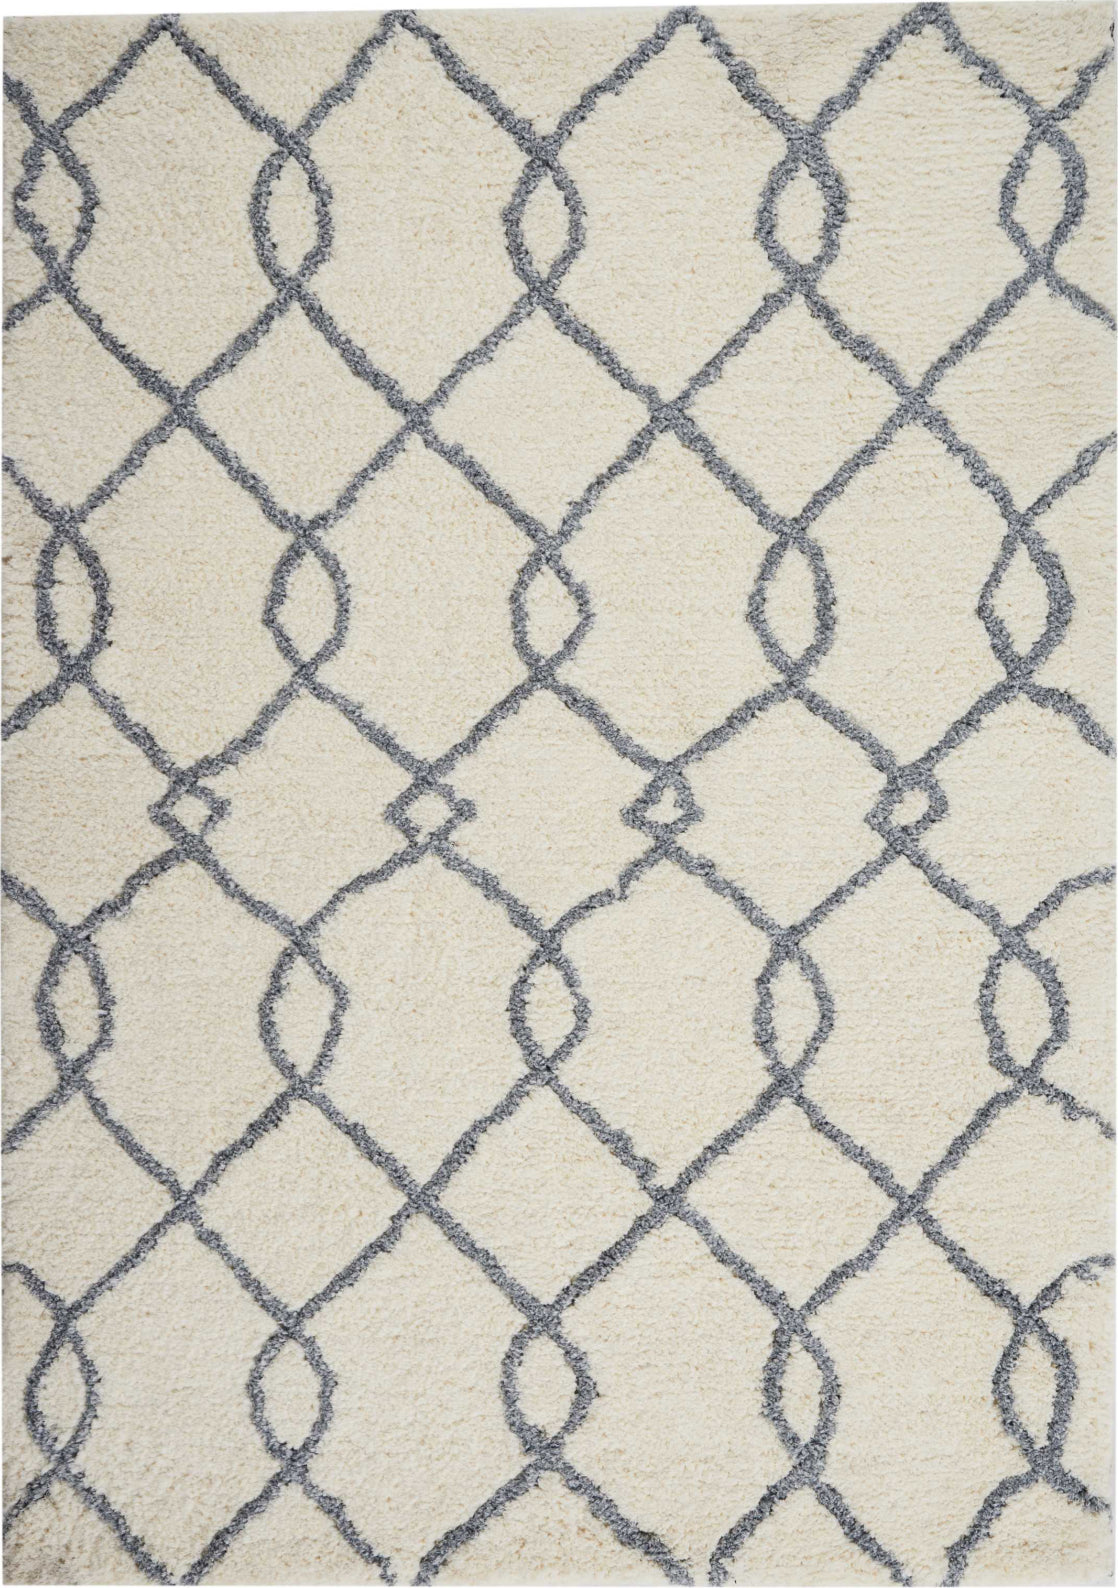 Nourison Galway GLW02 Ivory Blue Area Rug main image